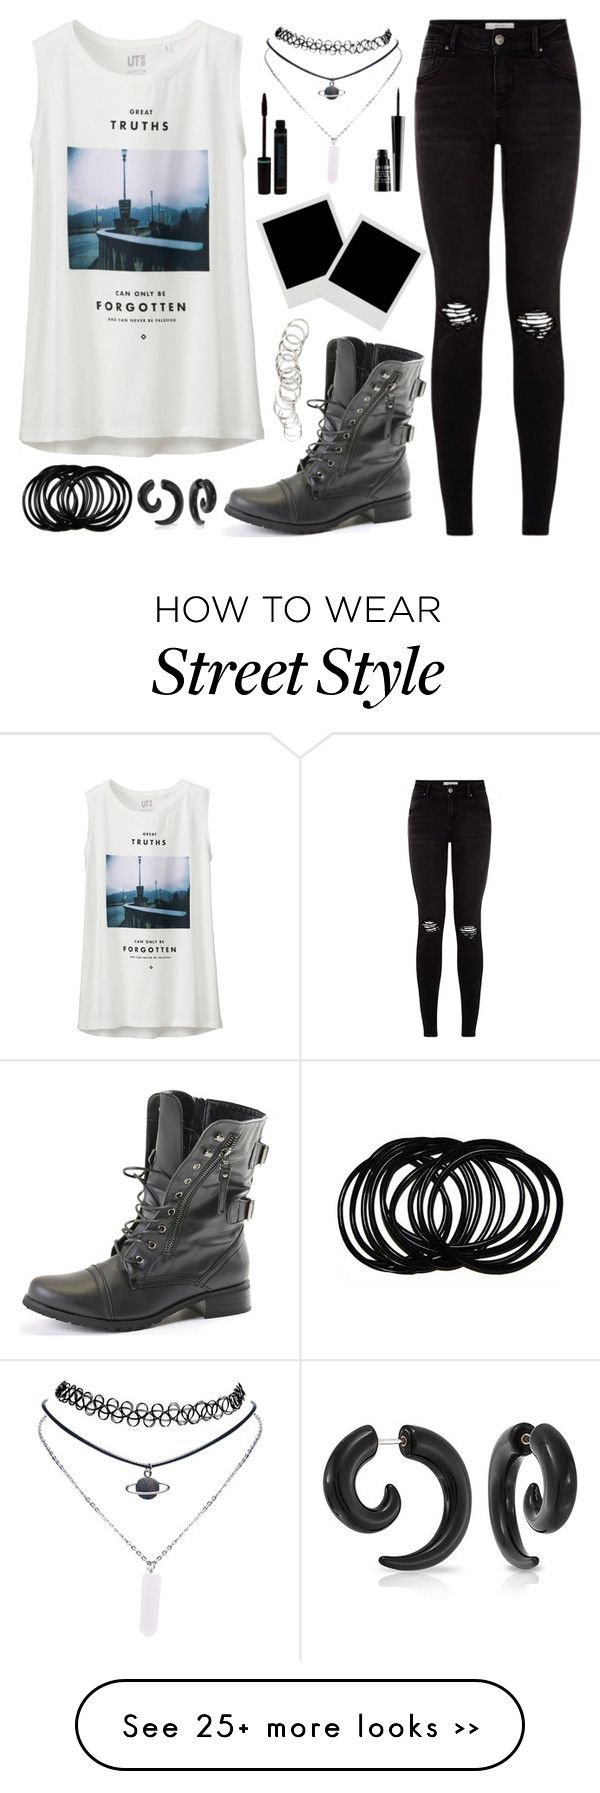 """""""street style"""" by aoihikarianna on Polyvore featuring Uniqlo, Wet Seal, Bling Jewelry, H&M and Lord & Berry"""